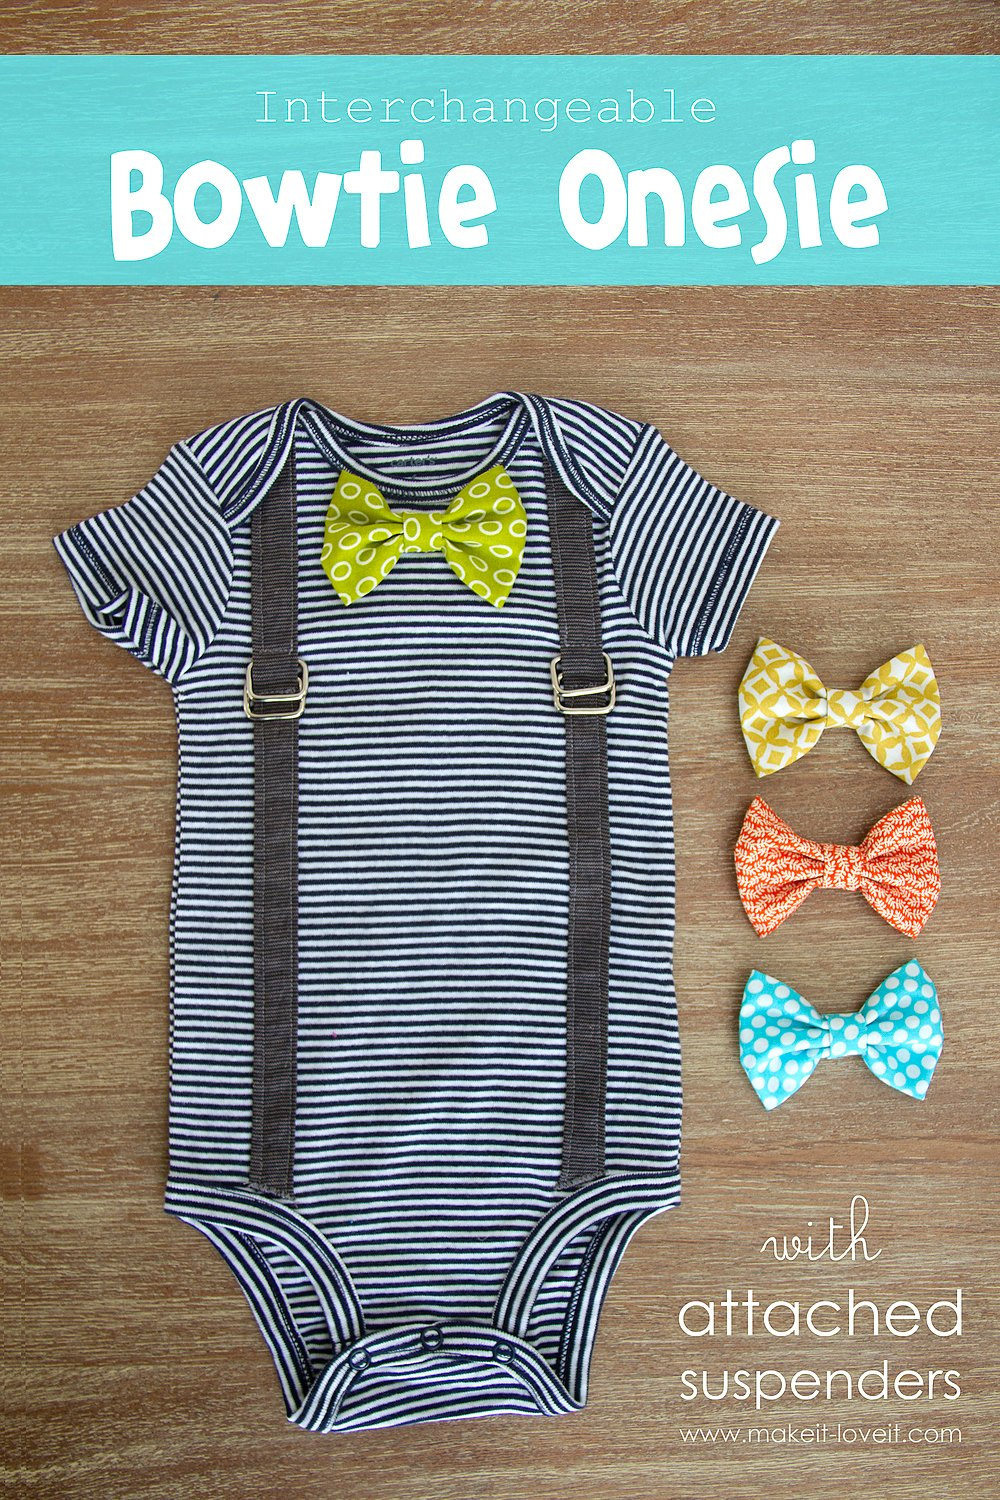 Interchangeable Bowtie Onesie….with Attached Suspenders (2 variations)